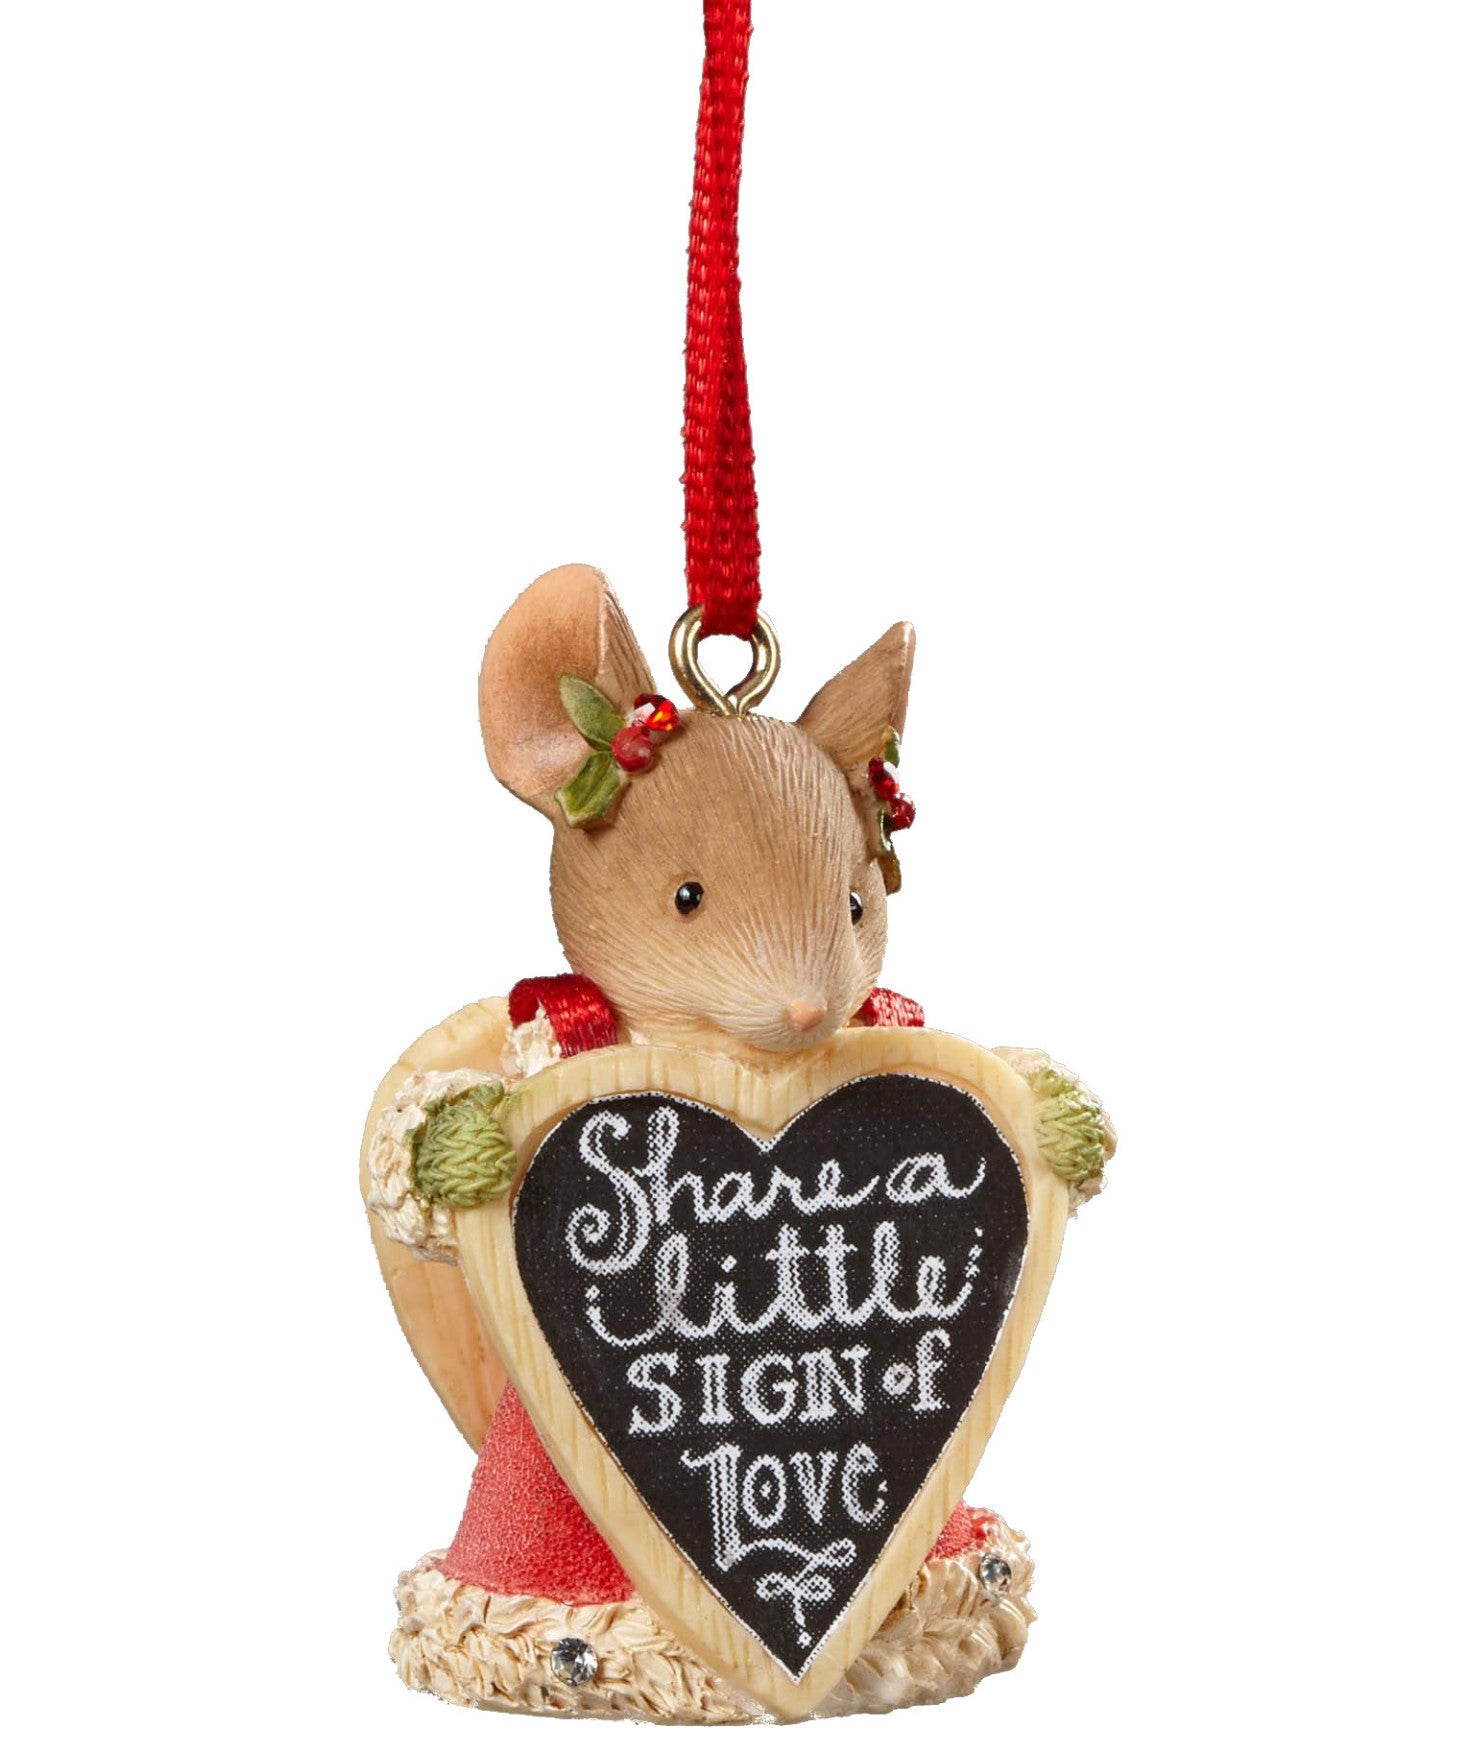 Share a Little Sign of Love Mouse Ornament